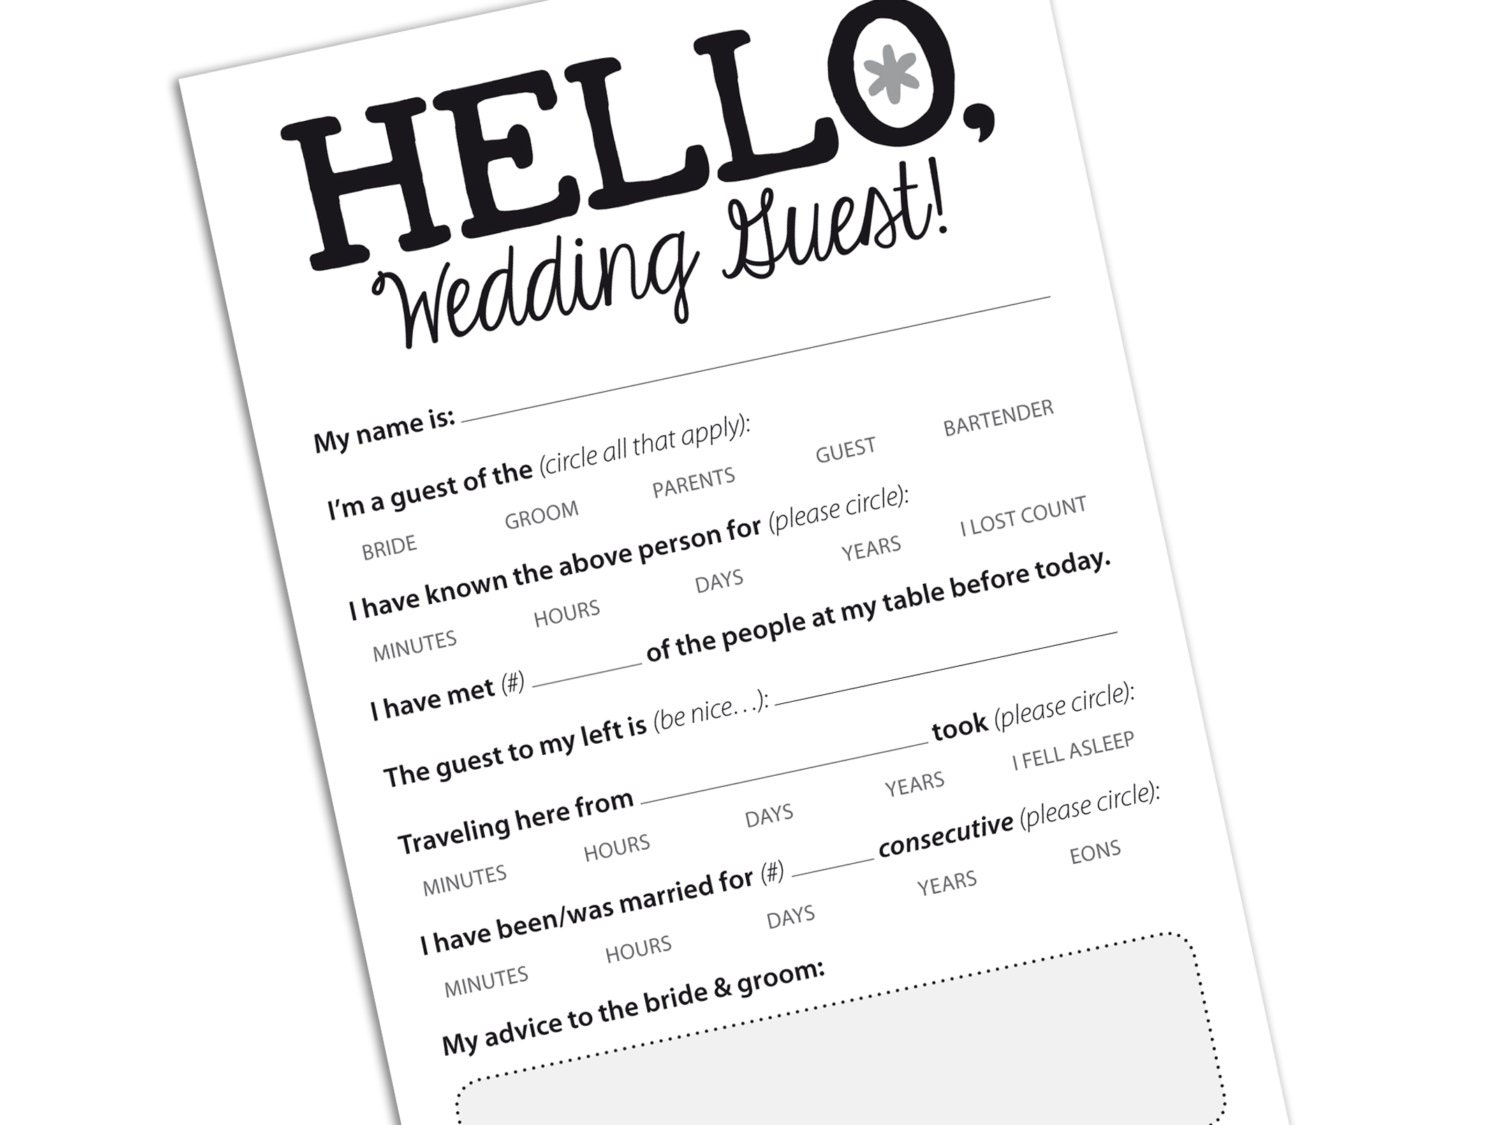 WEDDING GUEST CARD Funny Marriage Advice Card By Helloinklings